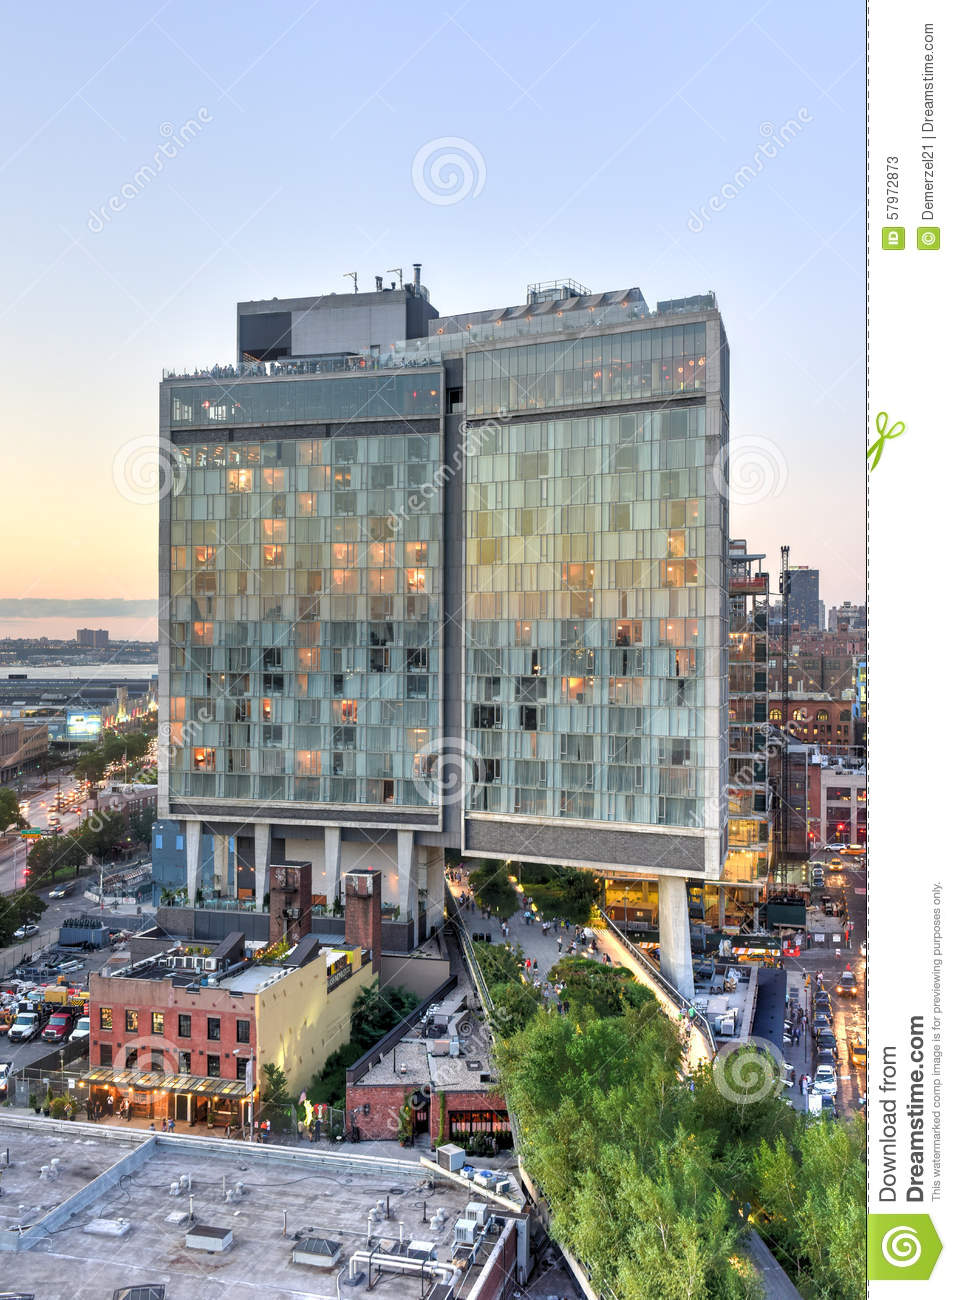 Hotel Meatpacking District New York